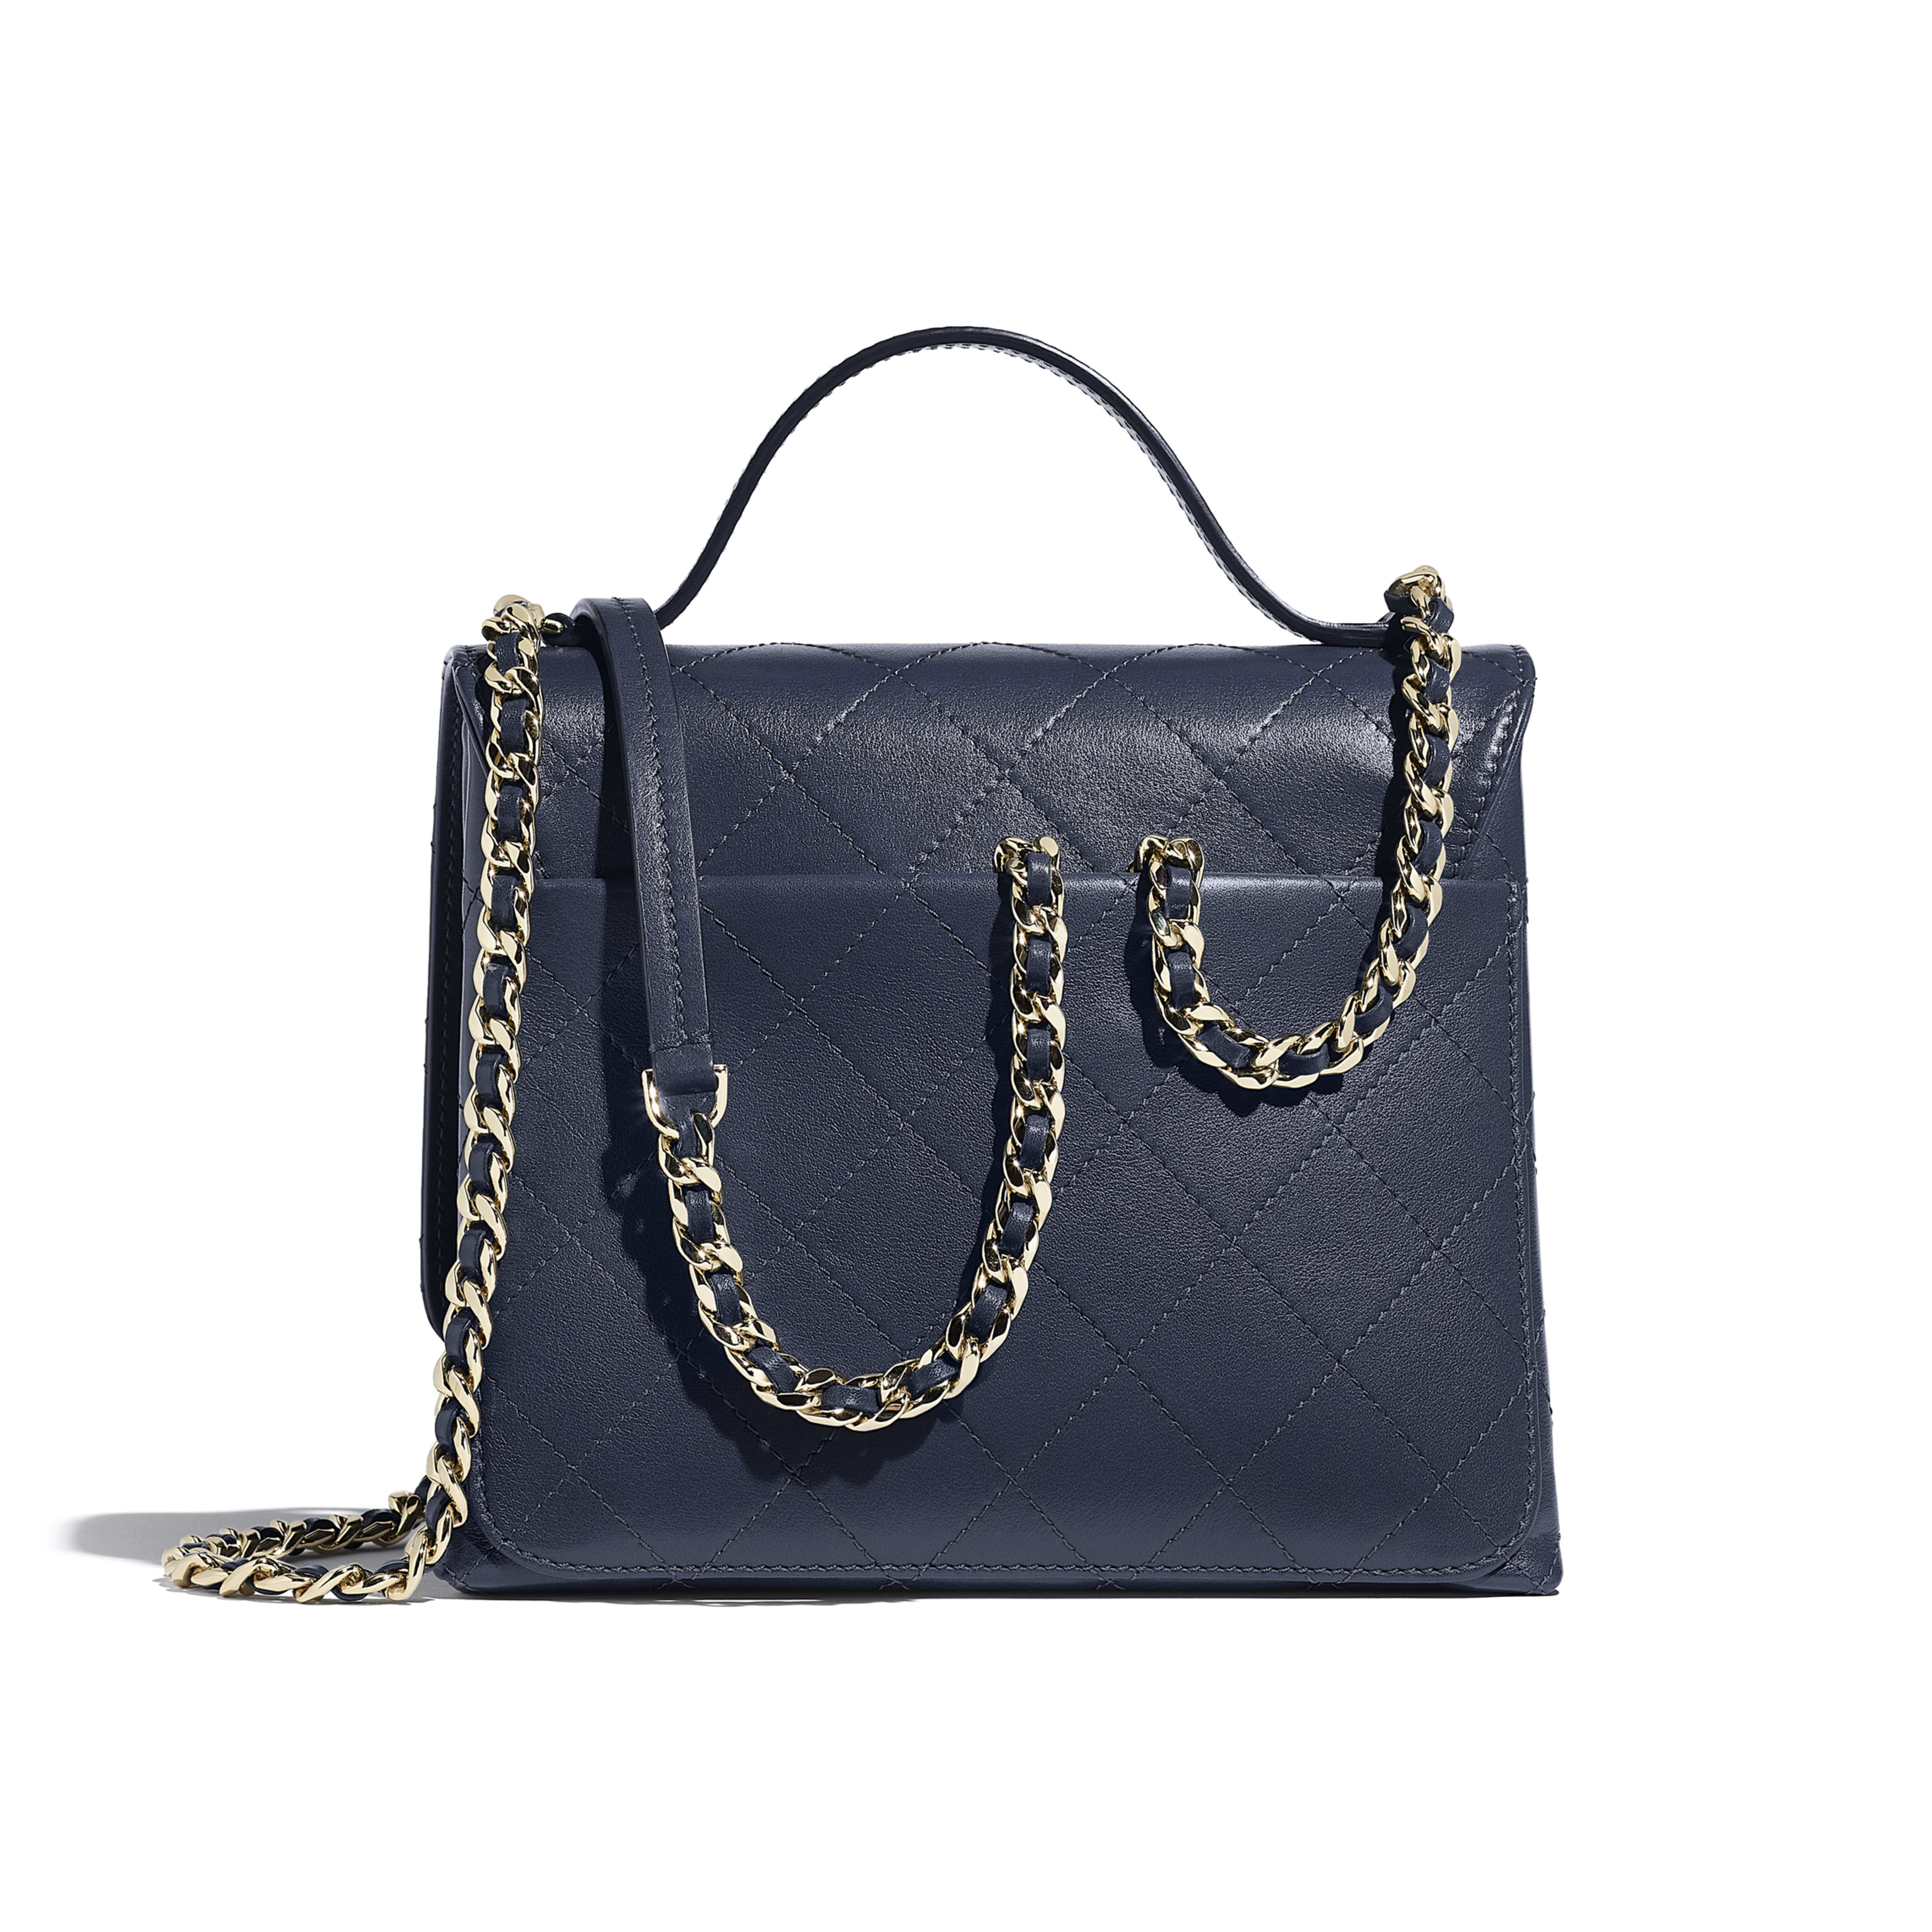 Flap Bag with Top Handle - Navy Blue - Calfskin & Gold-Tone Metal - Alternative view - see full sized version